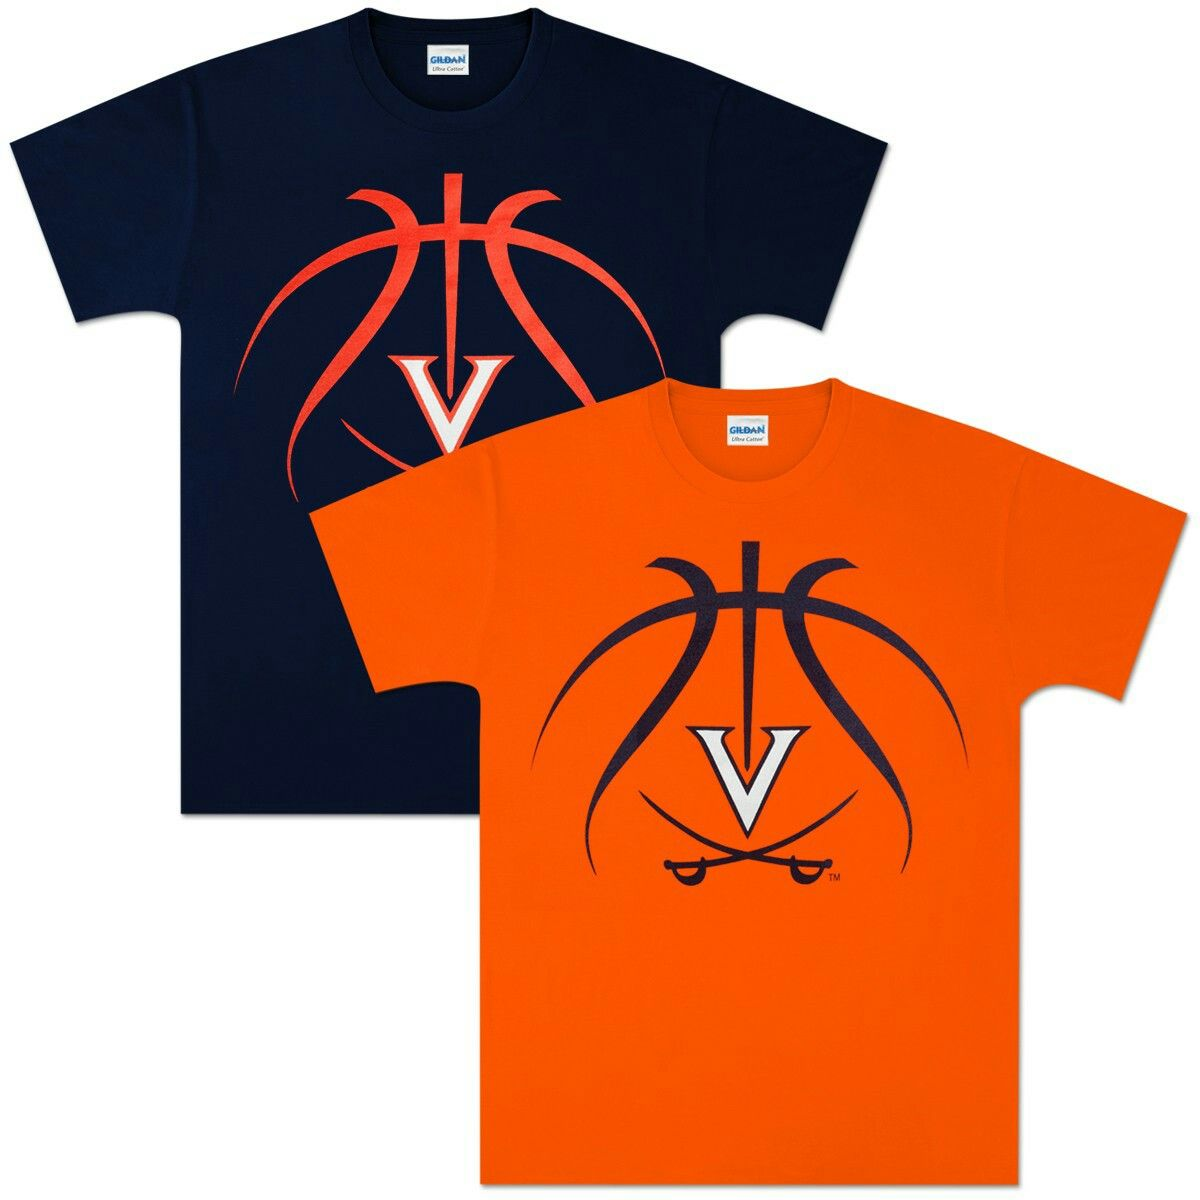 Pin by Catte Caviness on Sports Gear Basketball t shirt